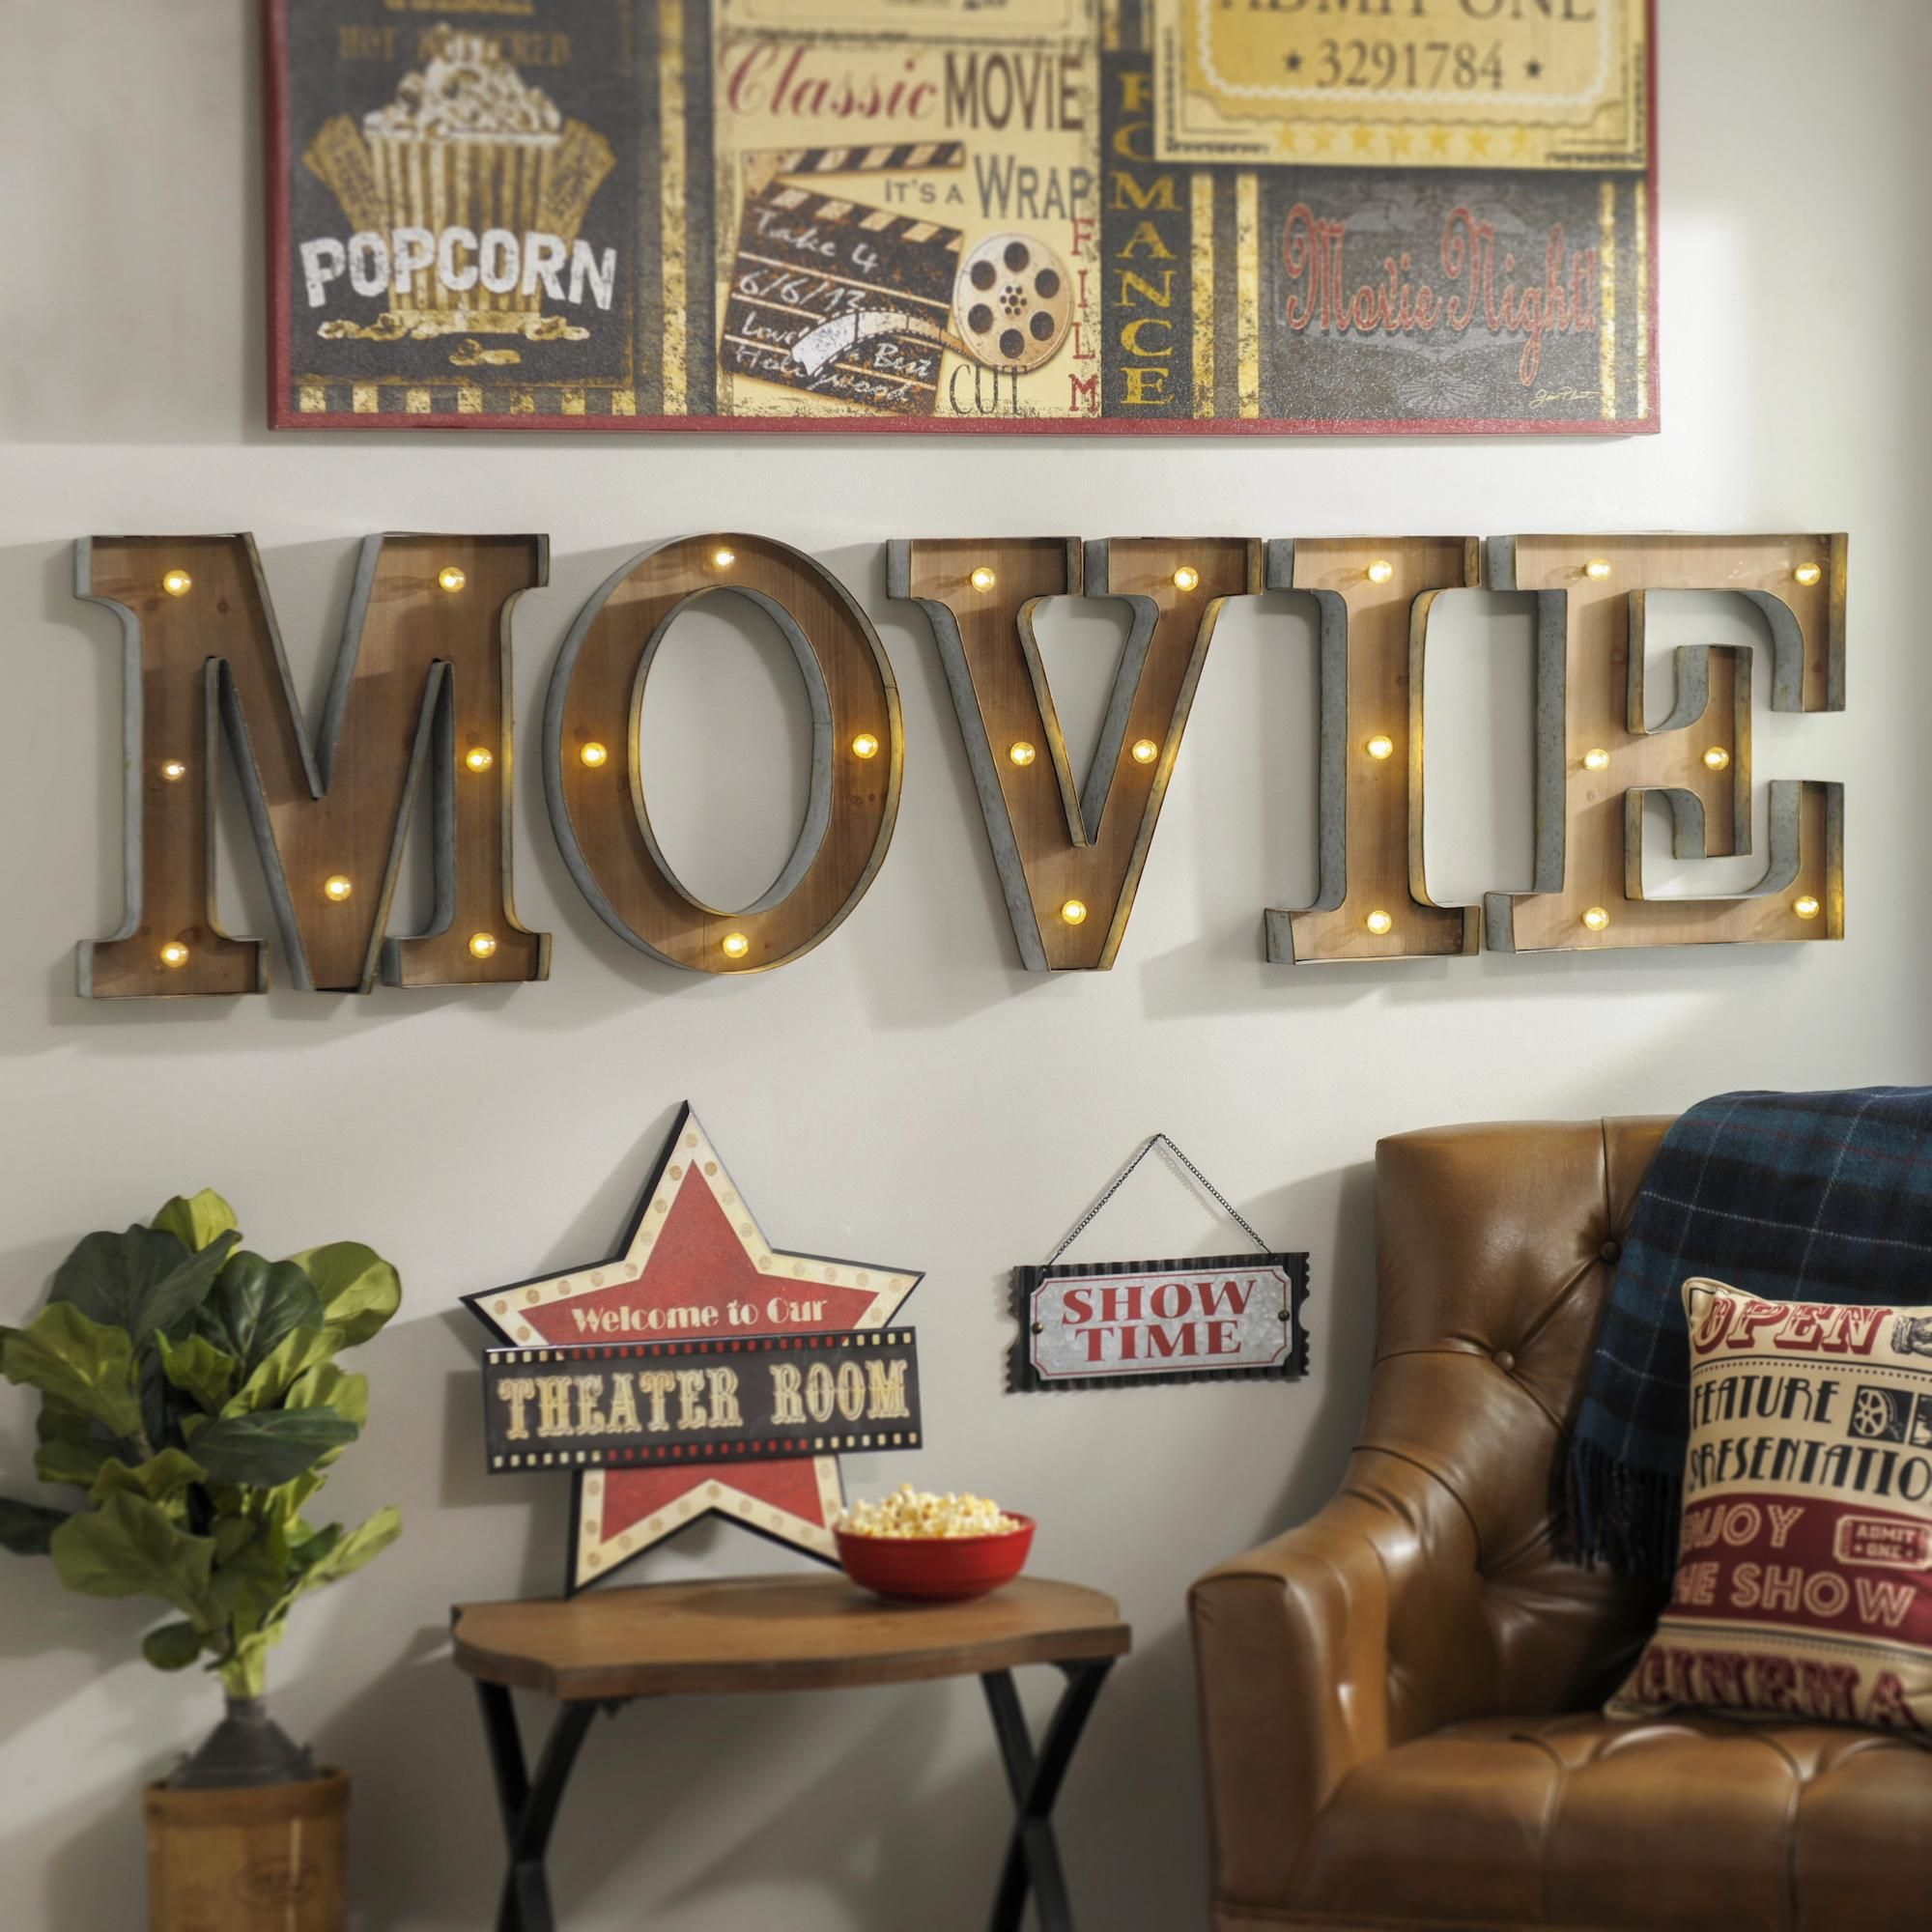 rooms pinterest below room speakers theater more island home ideas basement small decorations architect diy luxury decor long movie red ny seating pin